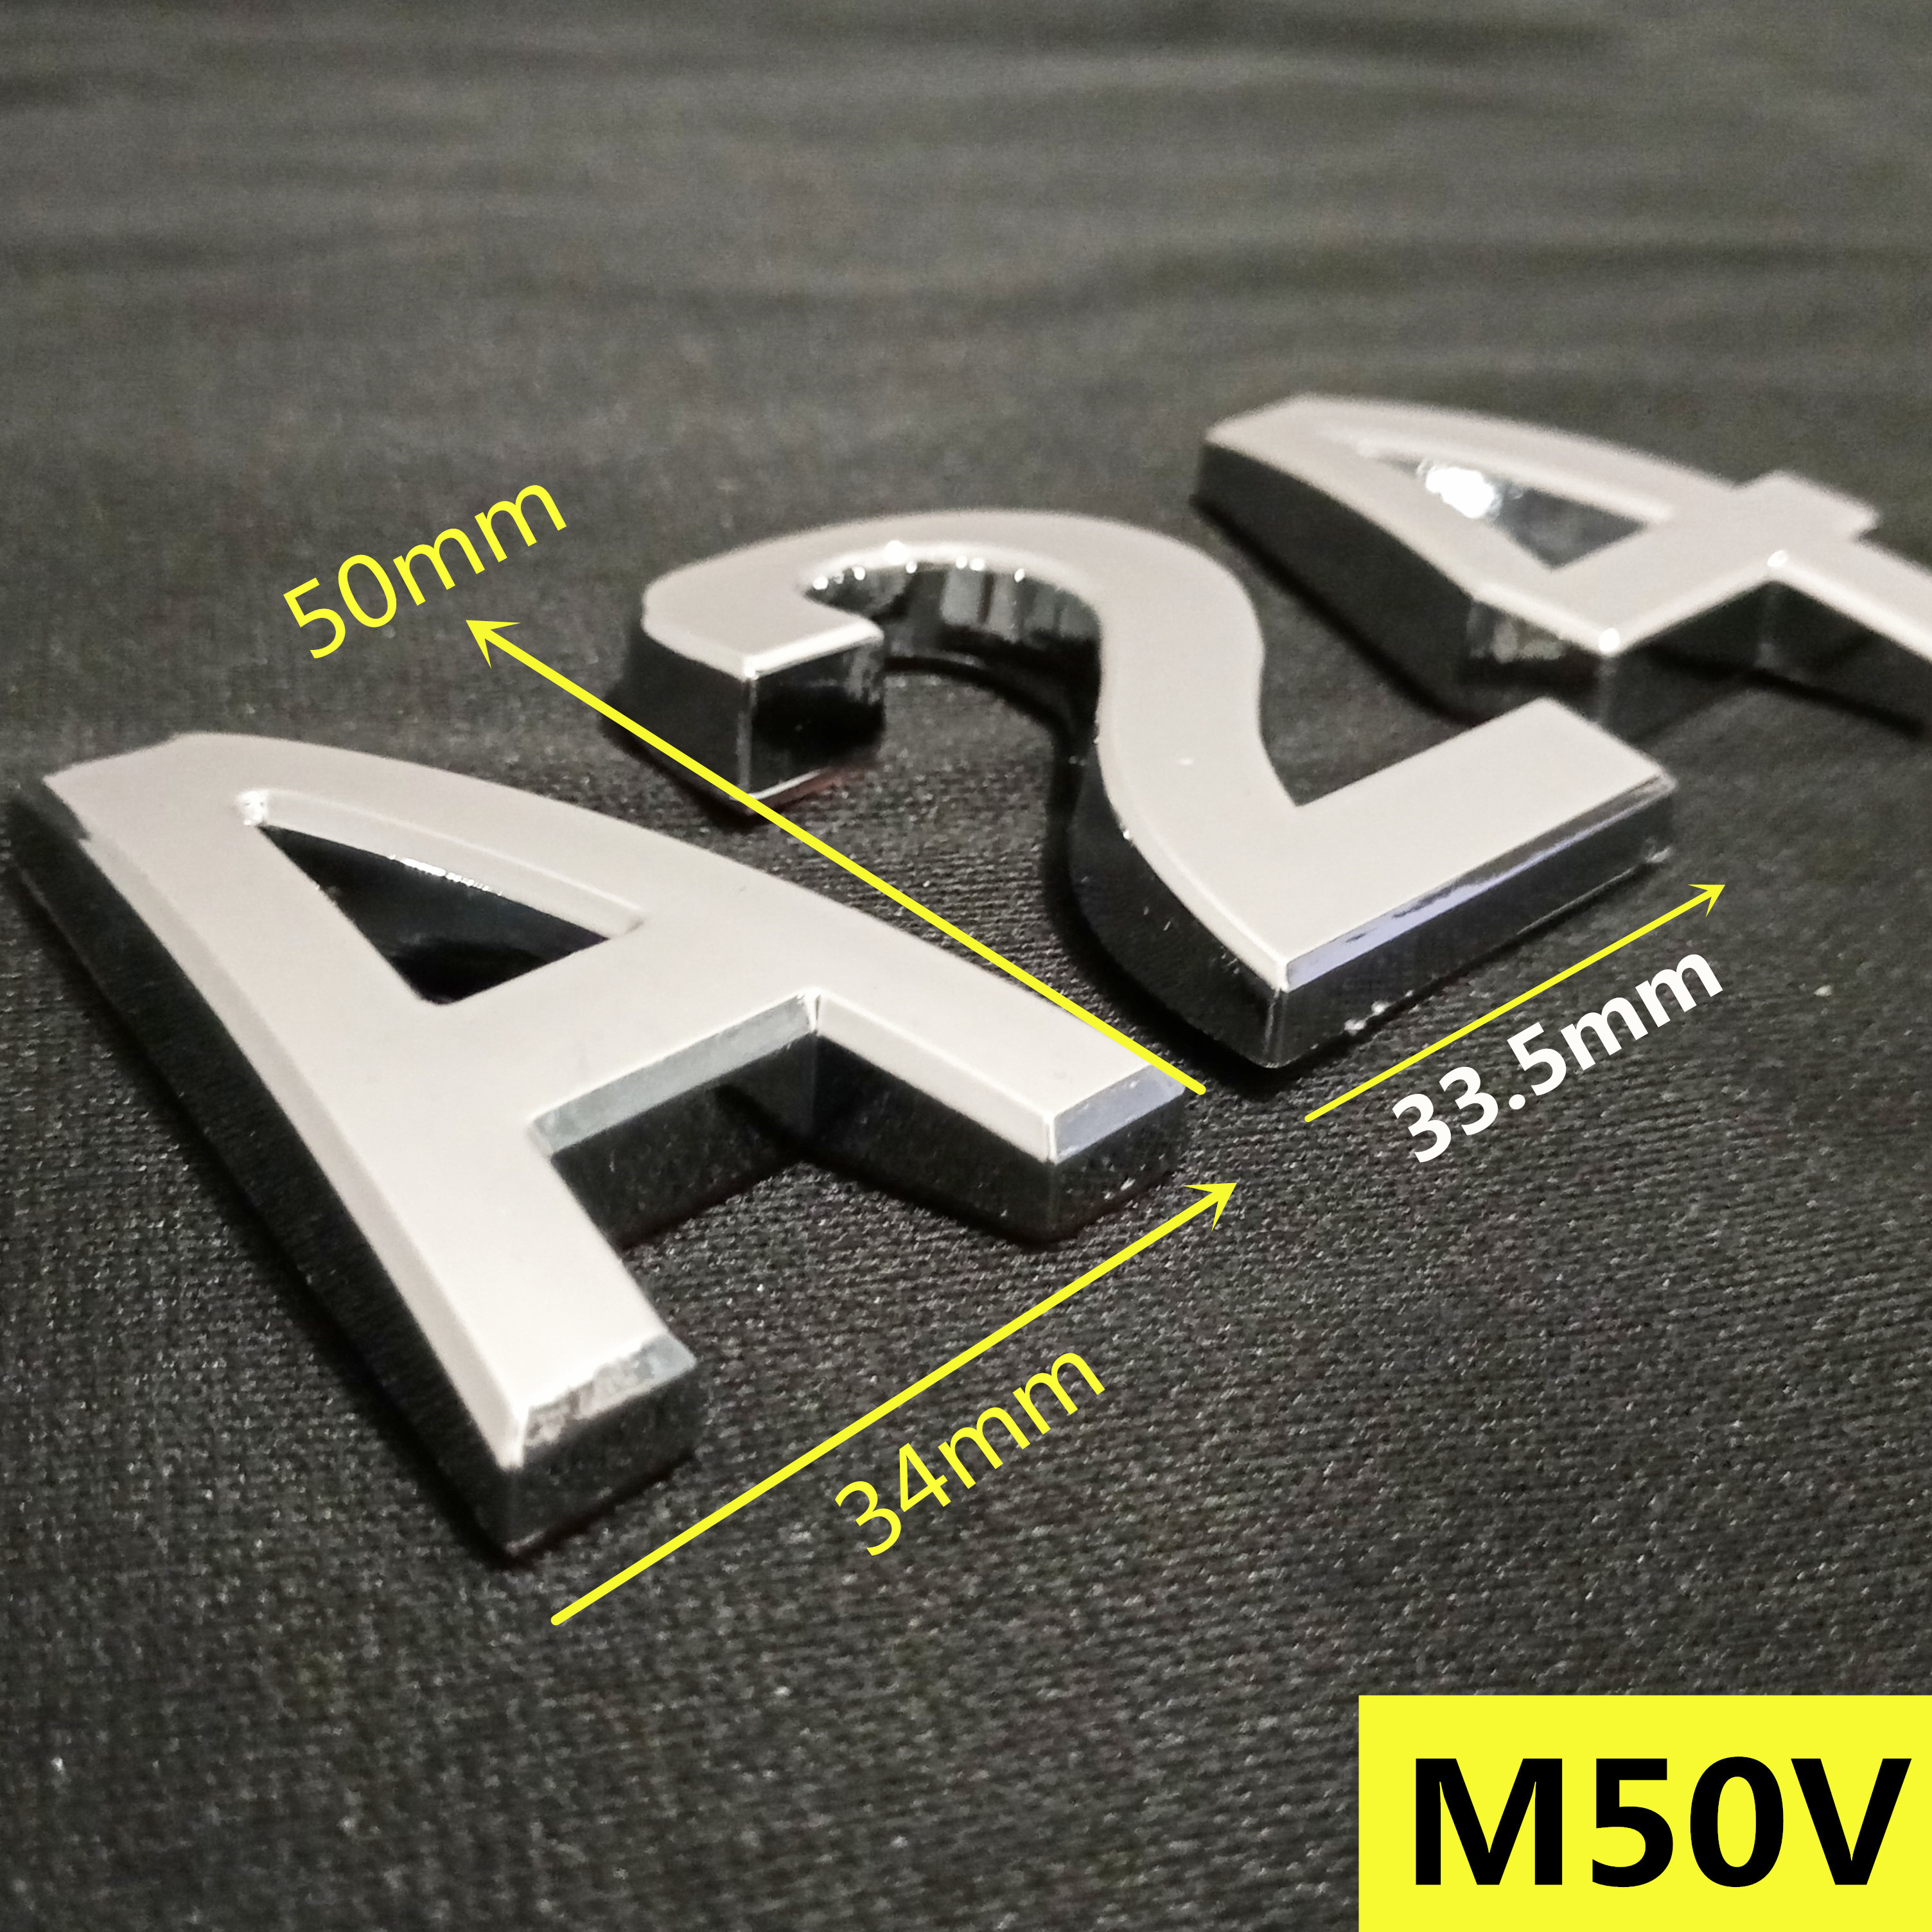 5cm/7cm 0123456789 A To Z Modern Silver Plaque Number House Hotel Door Number Address Digits Sticker Plate Sign ABS Plastic